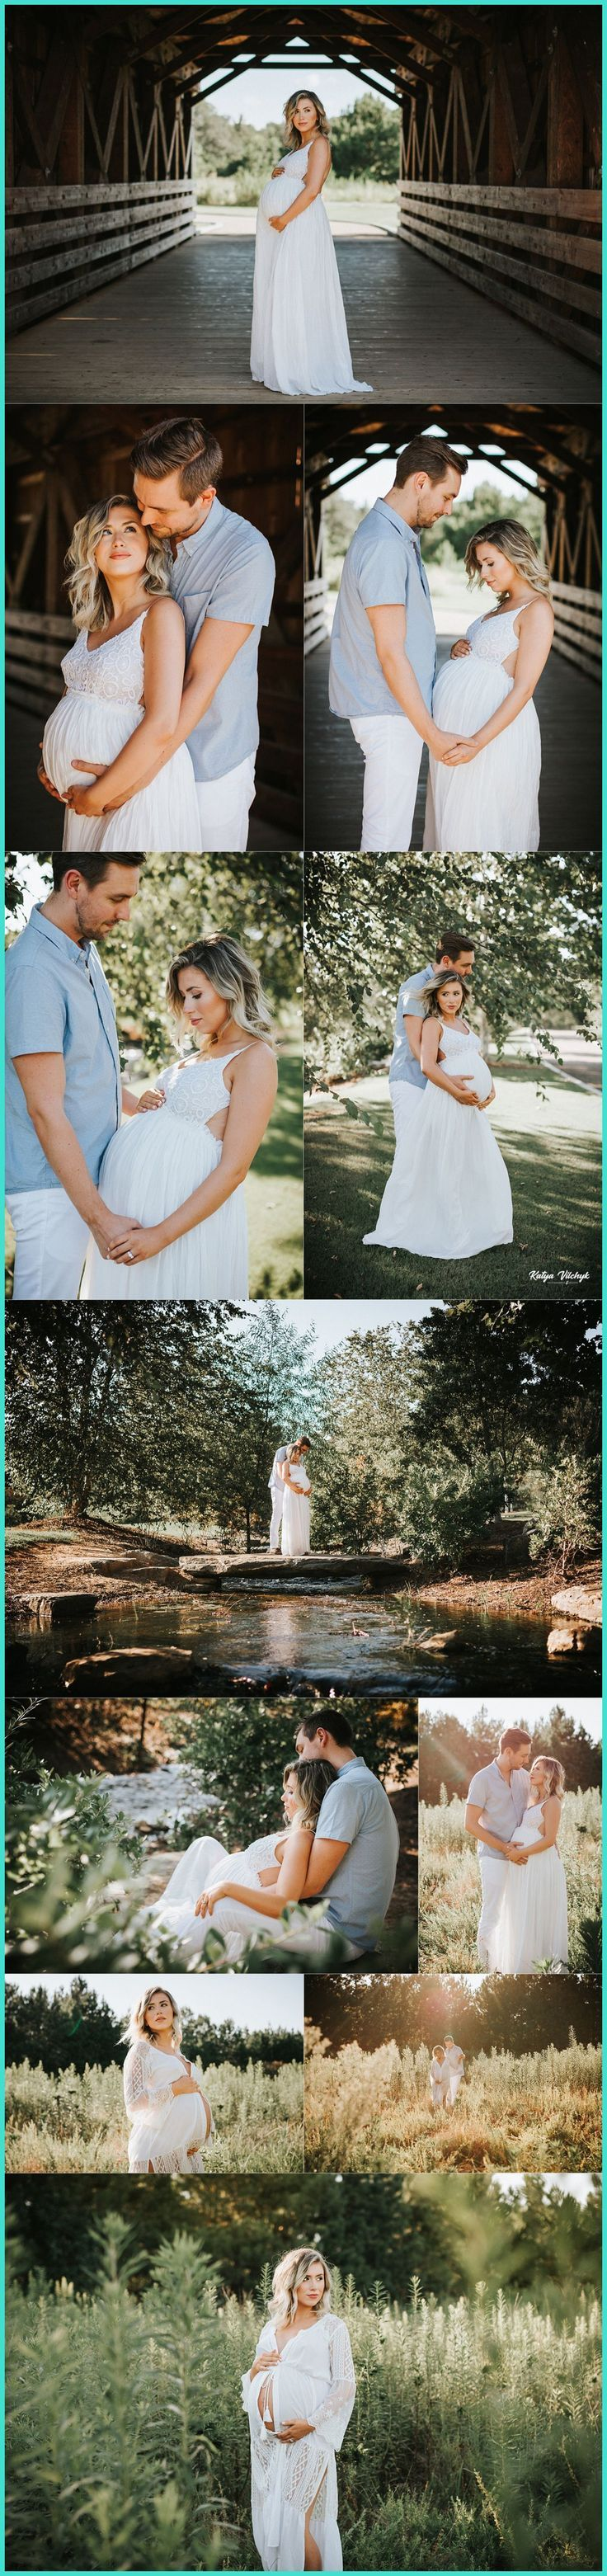 [Pregnancy Photography] How to Go For Maternity Photography With a Limited Budge…